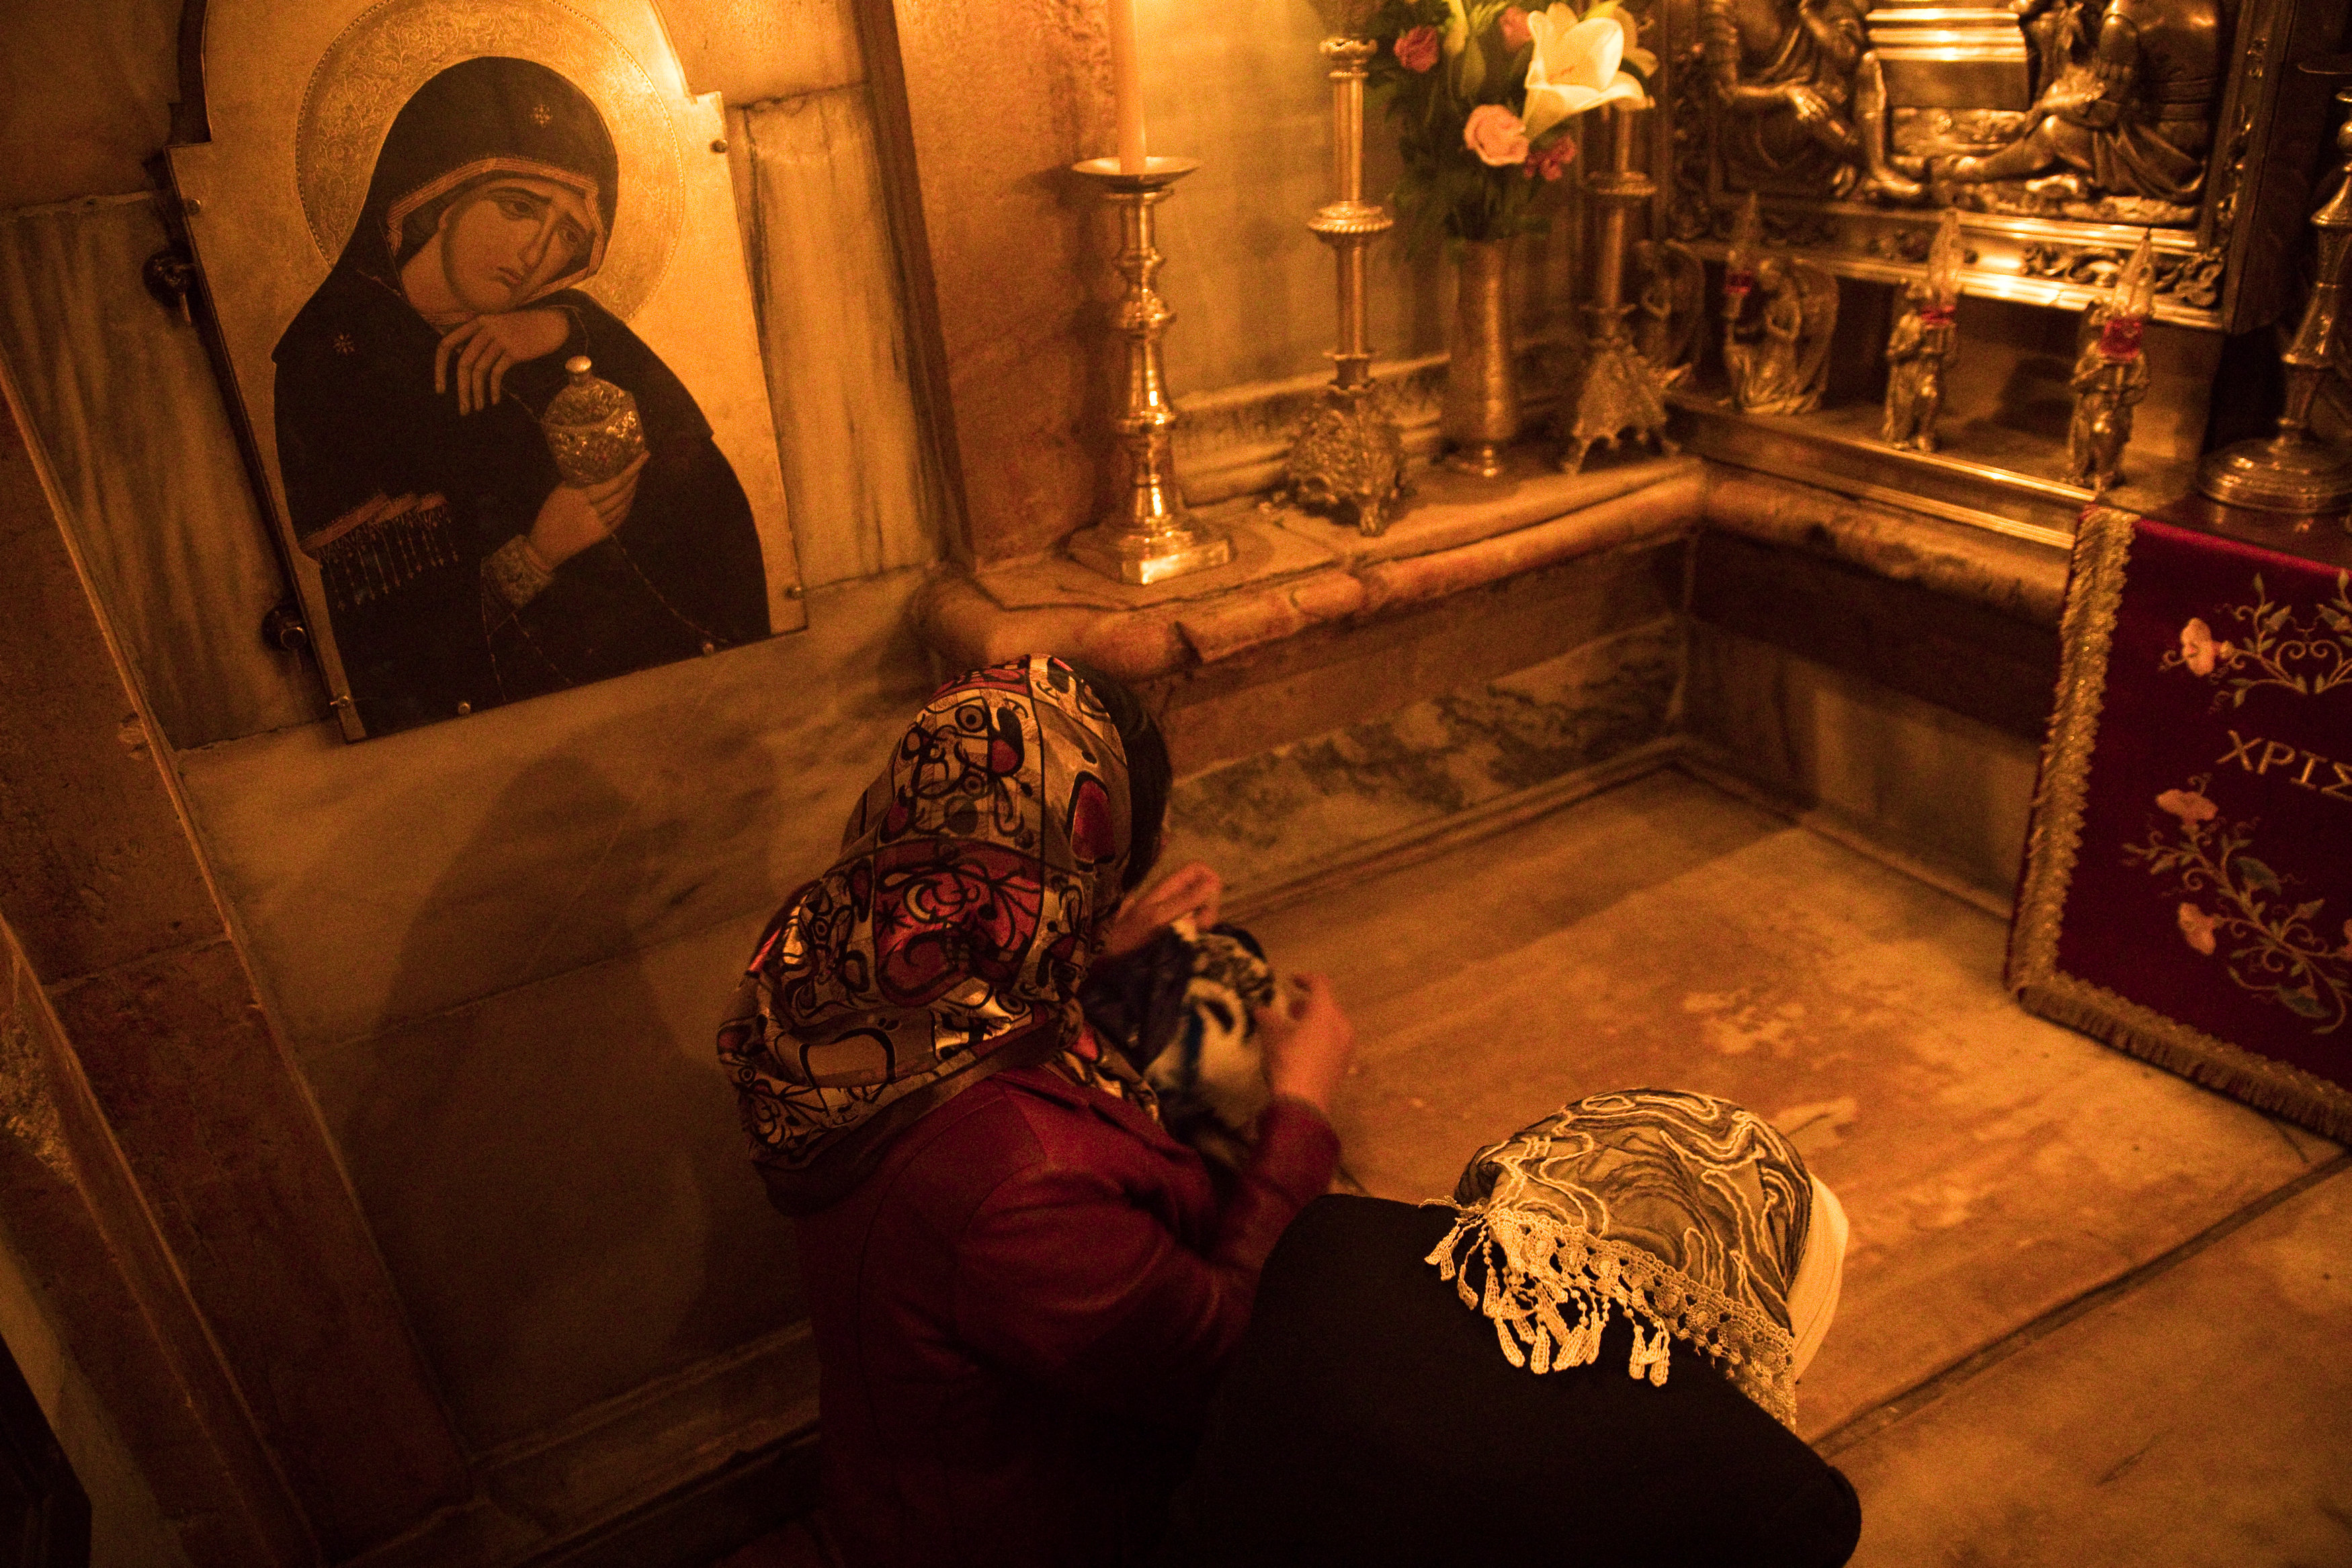 Muslim holds ancient key to Jesus tomb site in Jerusalem